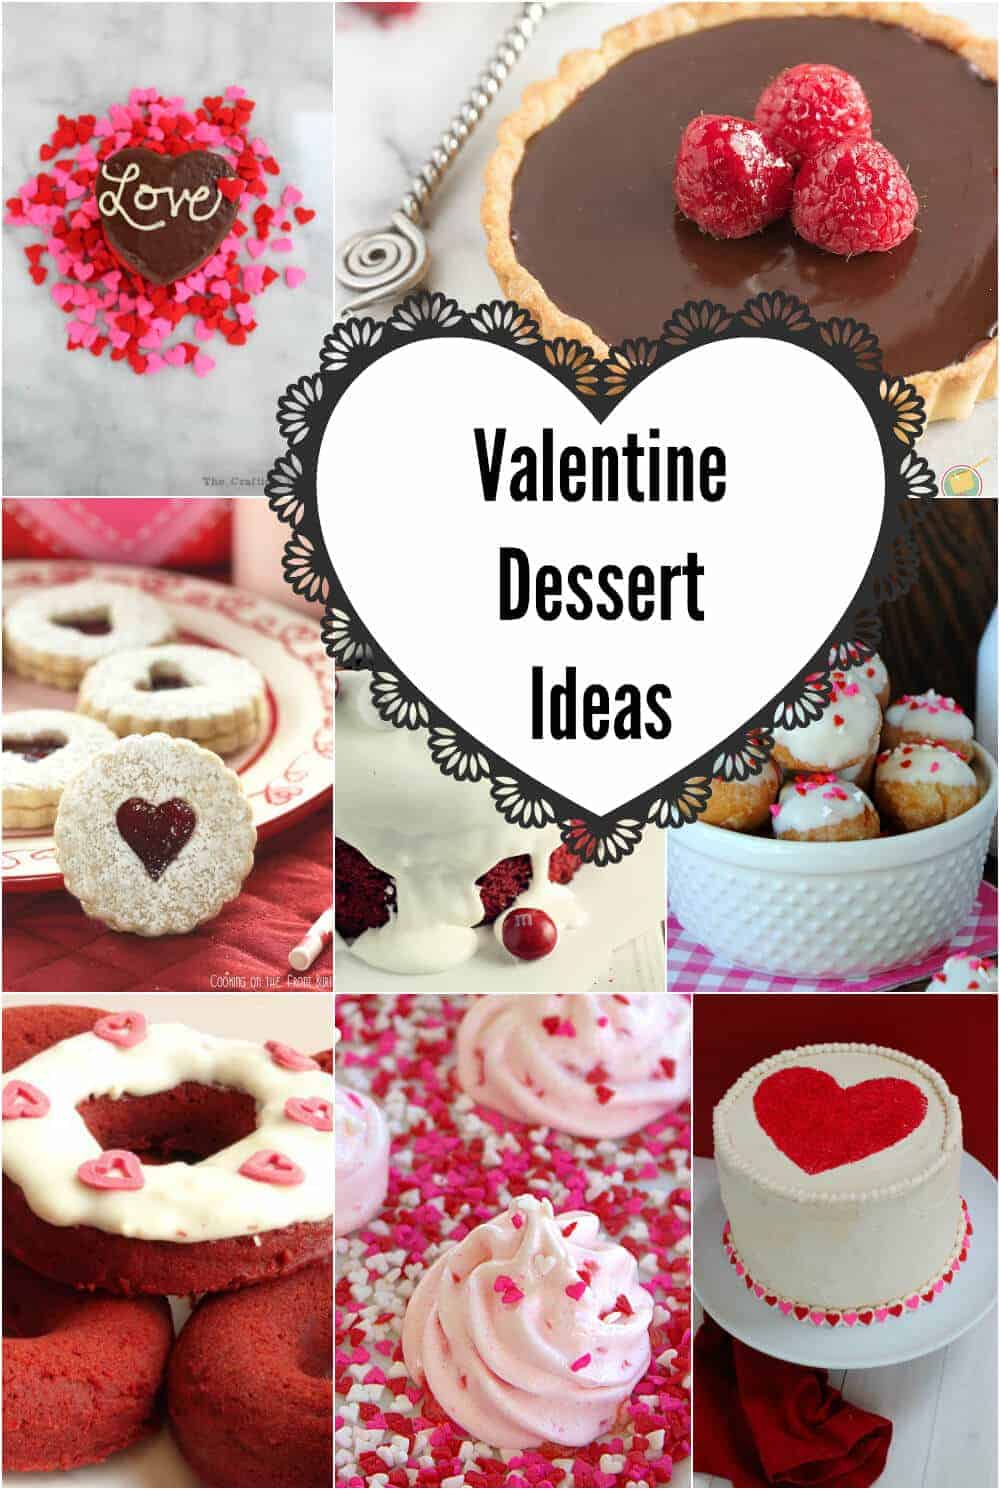 Delicious Valentine Dessert Ideas Page 2 Of 2 Princess